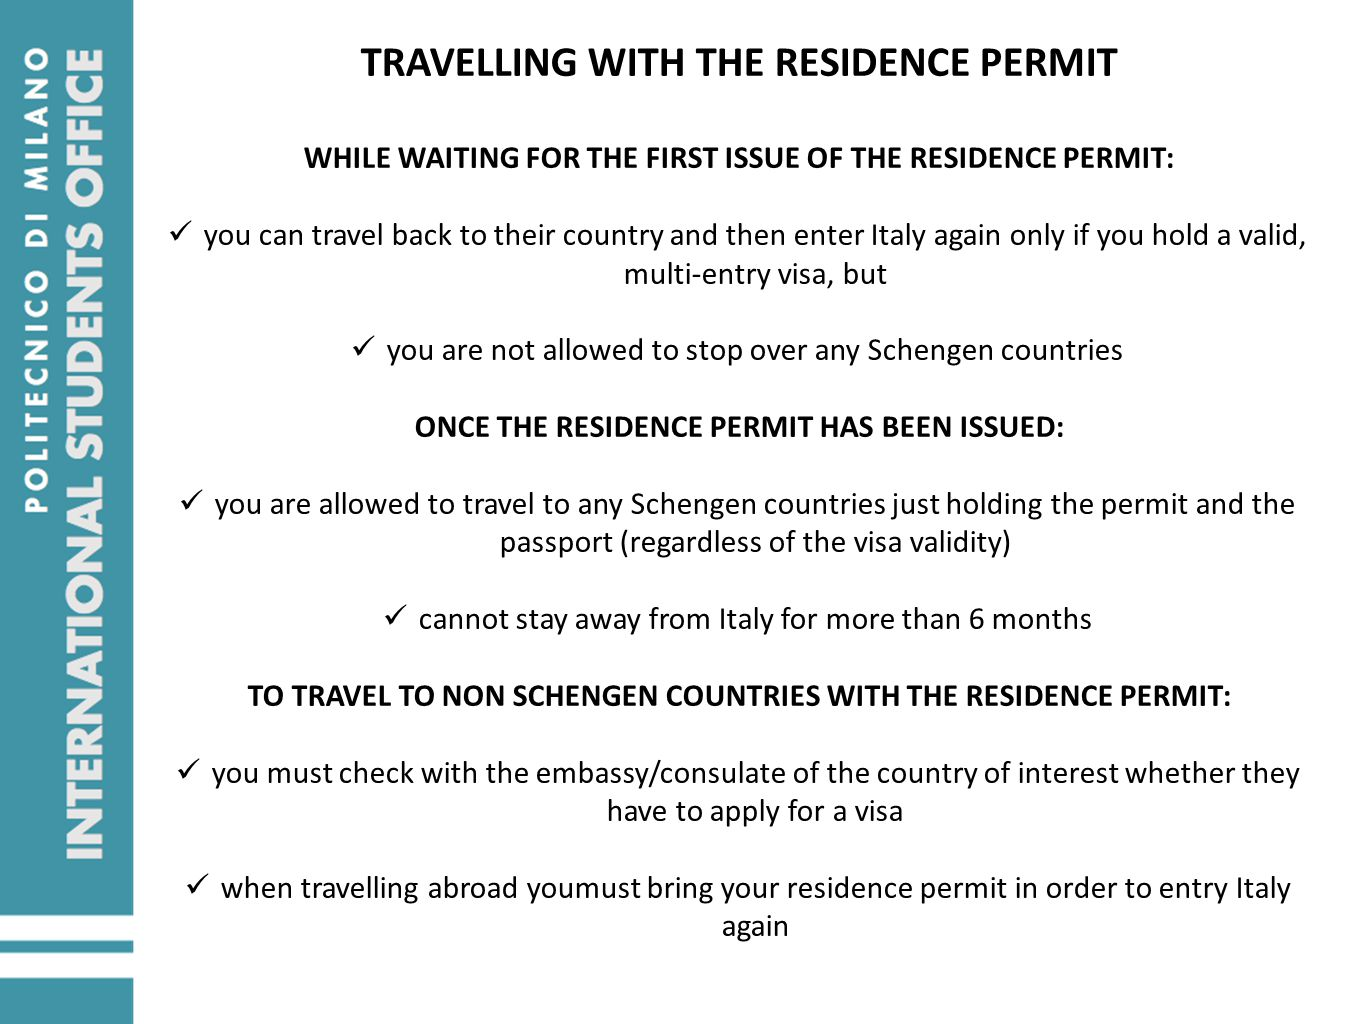 TRAVELLING WITH THE RESIDENCE PERMIT WHILE WAITING FOR THE FIRST ISSUE OF THE RESIDENCE PERMIT: you can travel back to their country and then enter It